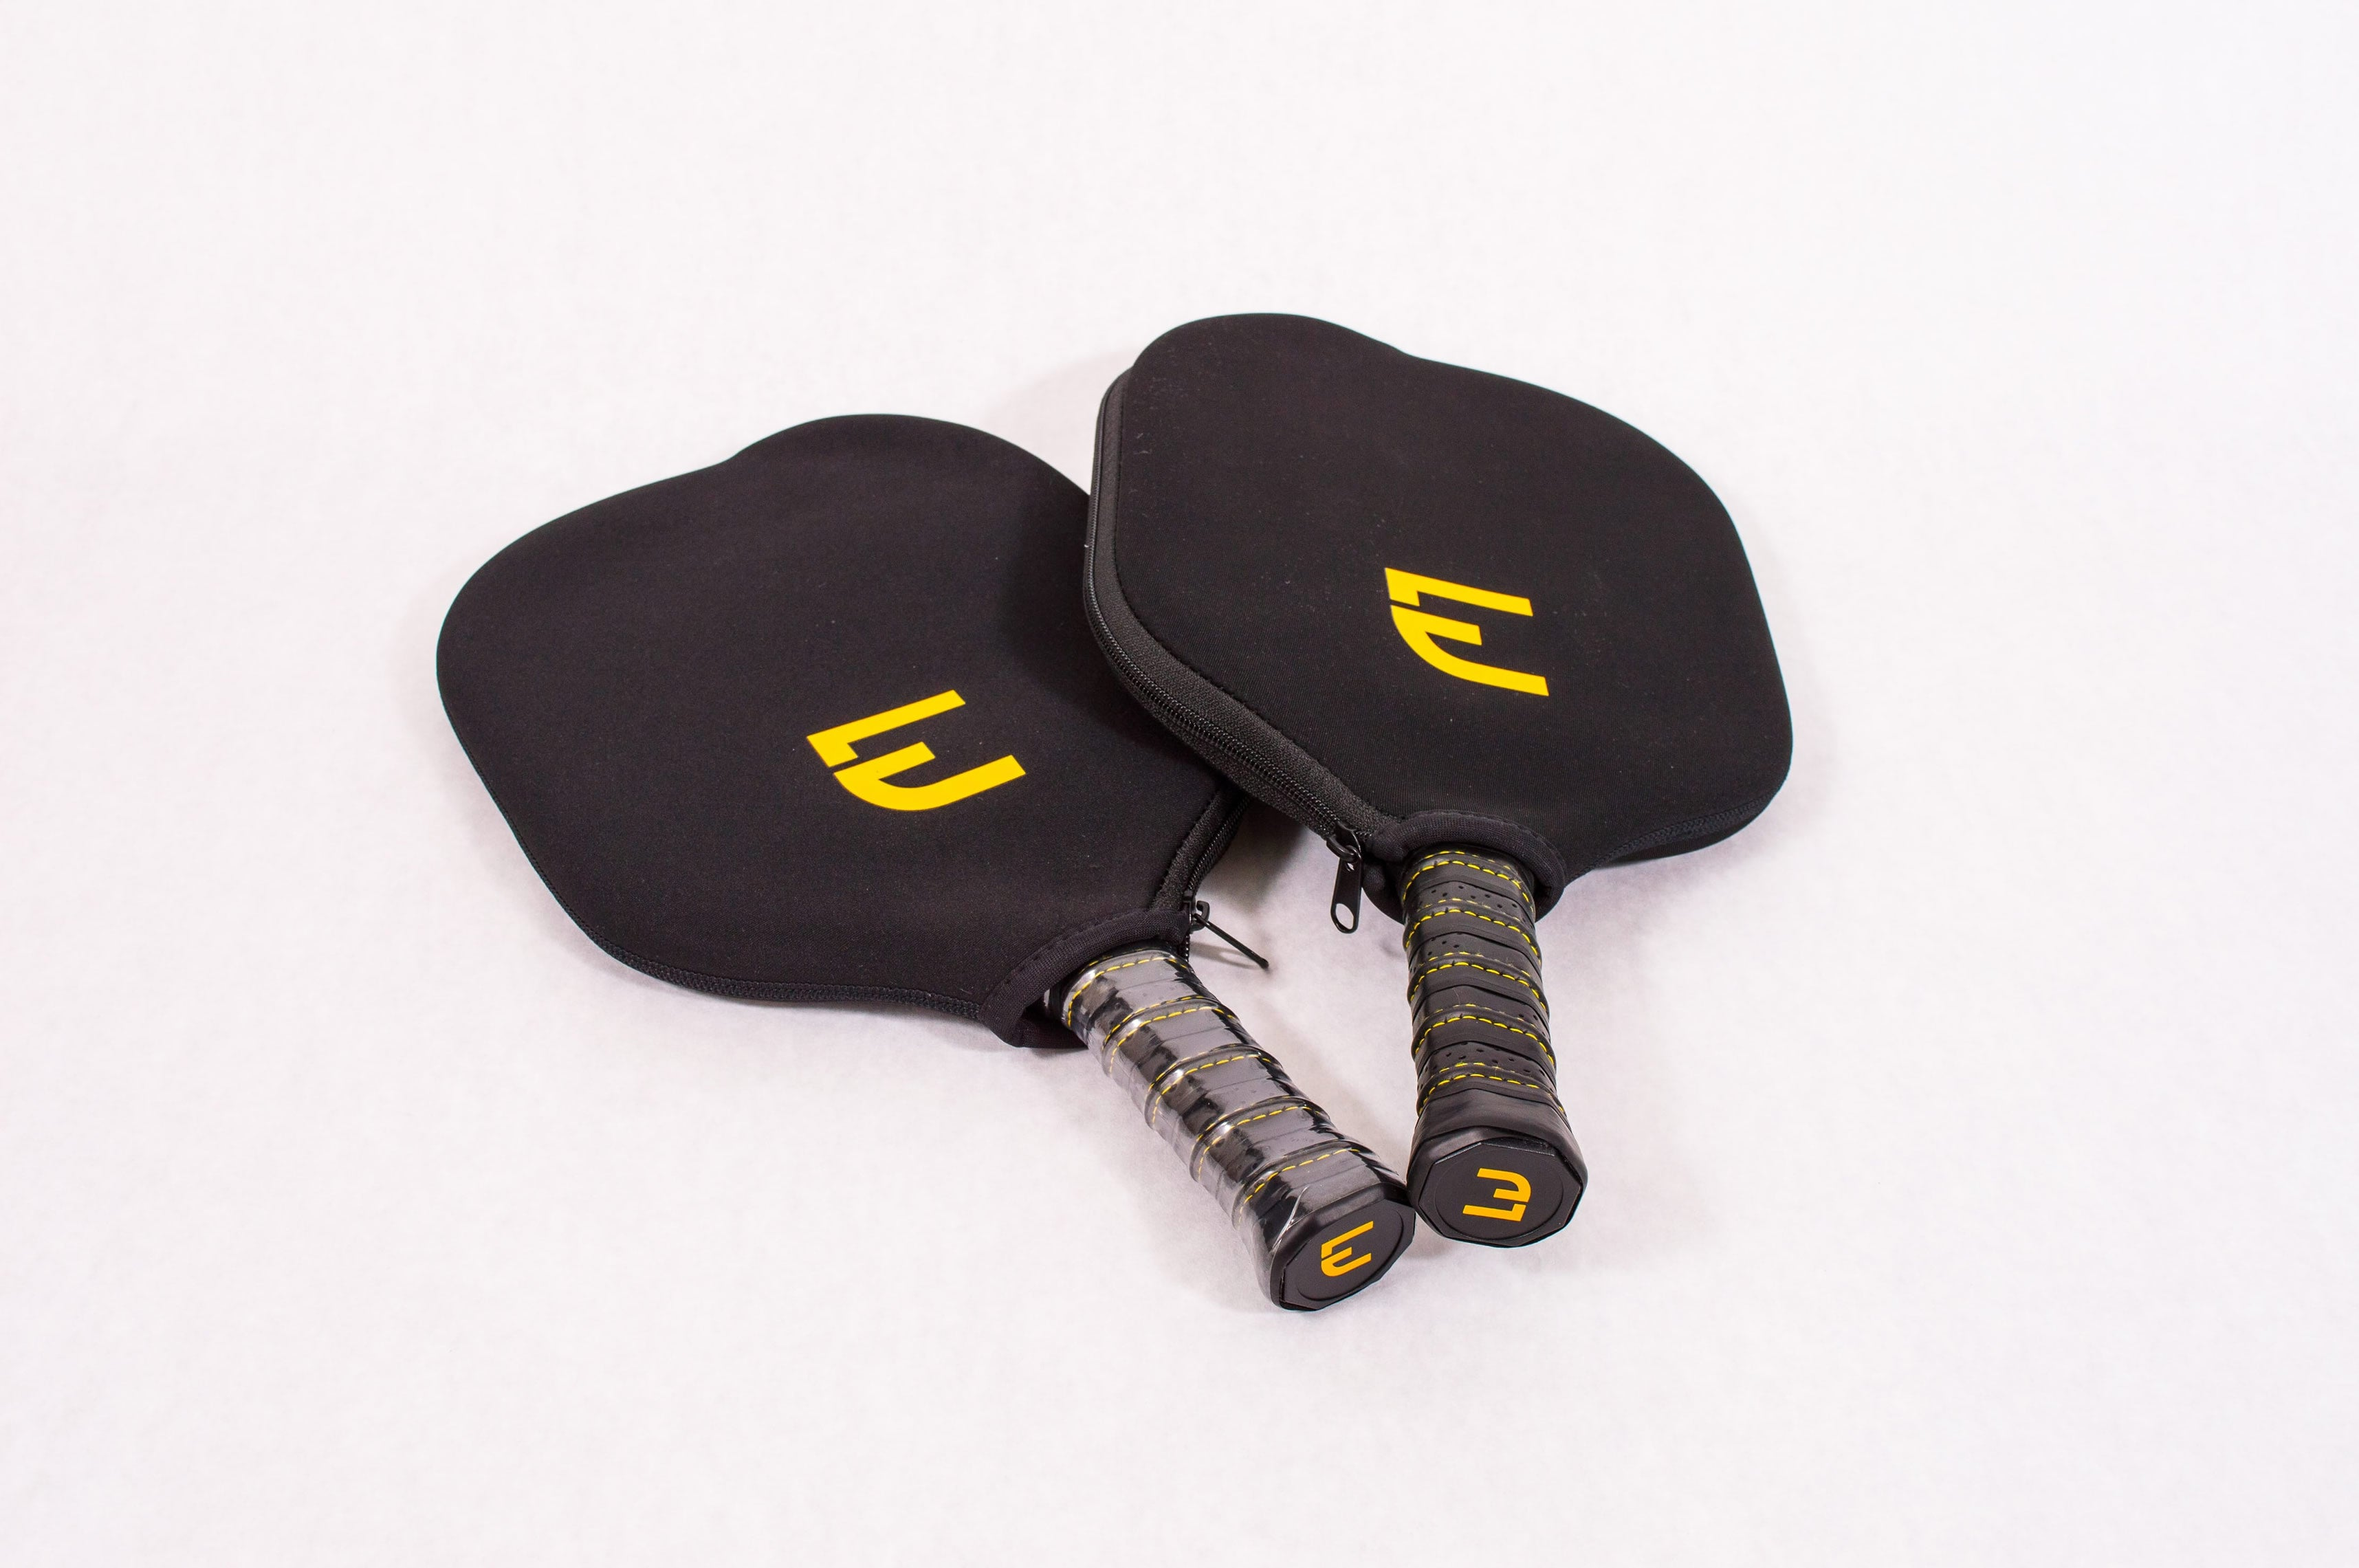 Two Electrum Pro Pickleball Paddles in Protective Electrum Covers